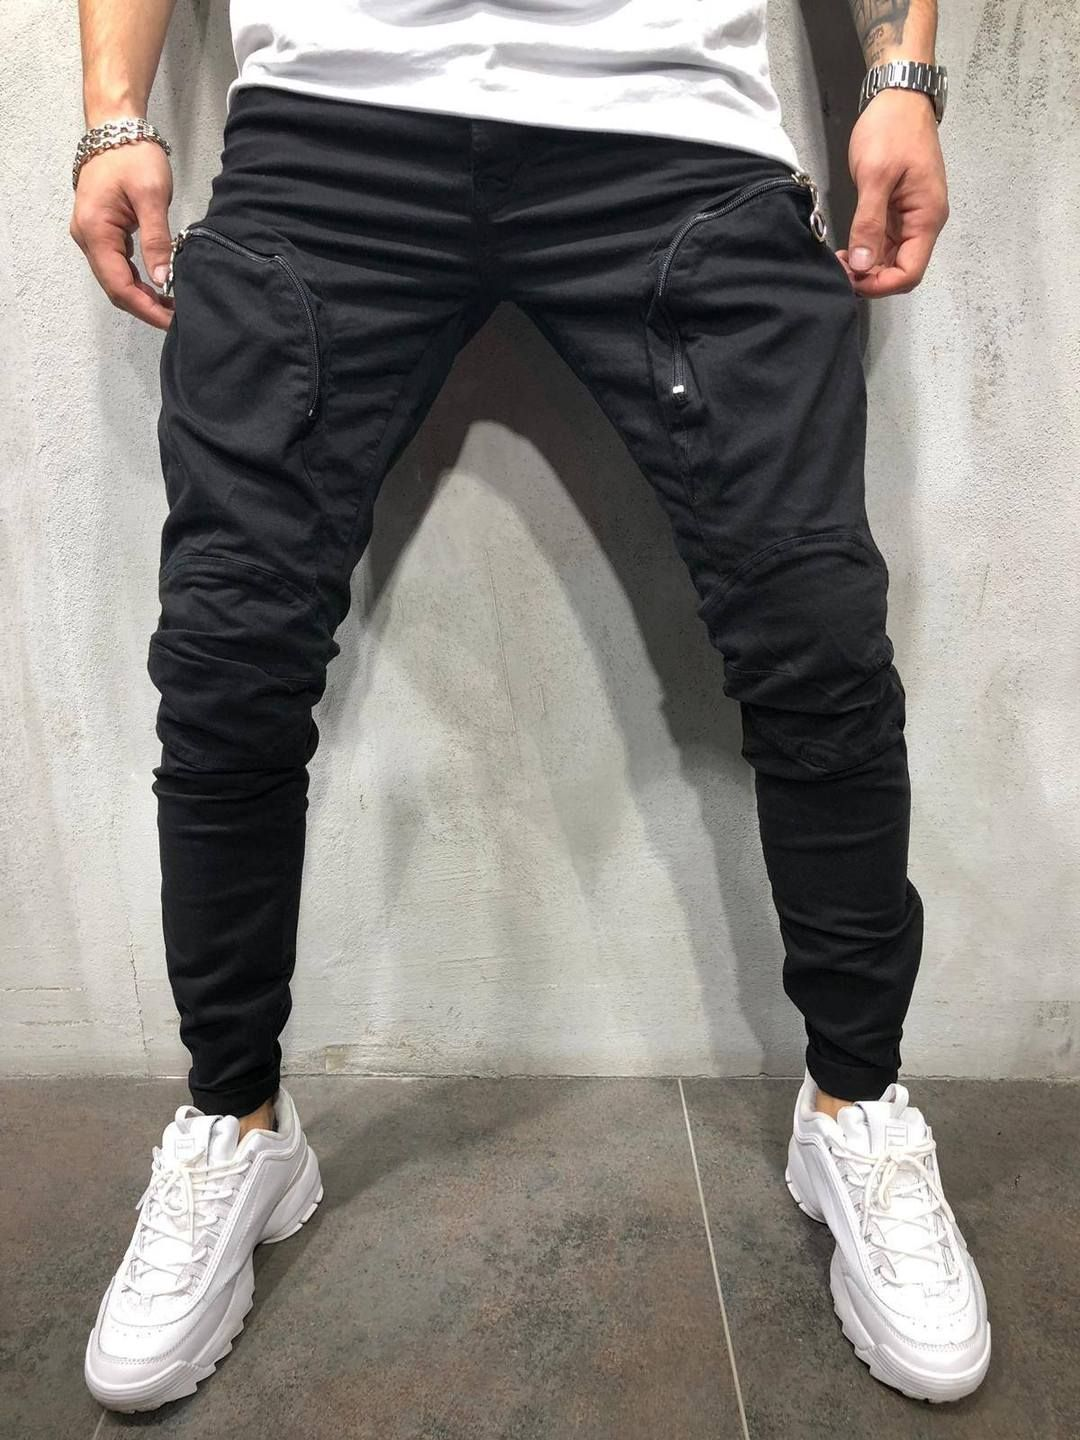 Men Black Joggers Pants Summer 2019 Mens Big Pockets Ankel Cargo Pants Male Spring Streetwear Overalls Sweatpants And To Have A Long Life. Mother & Kids